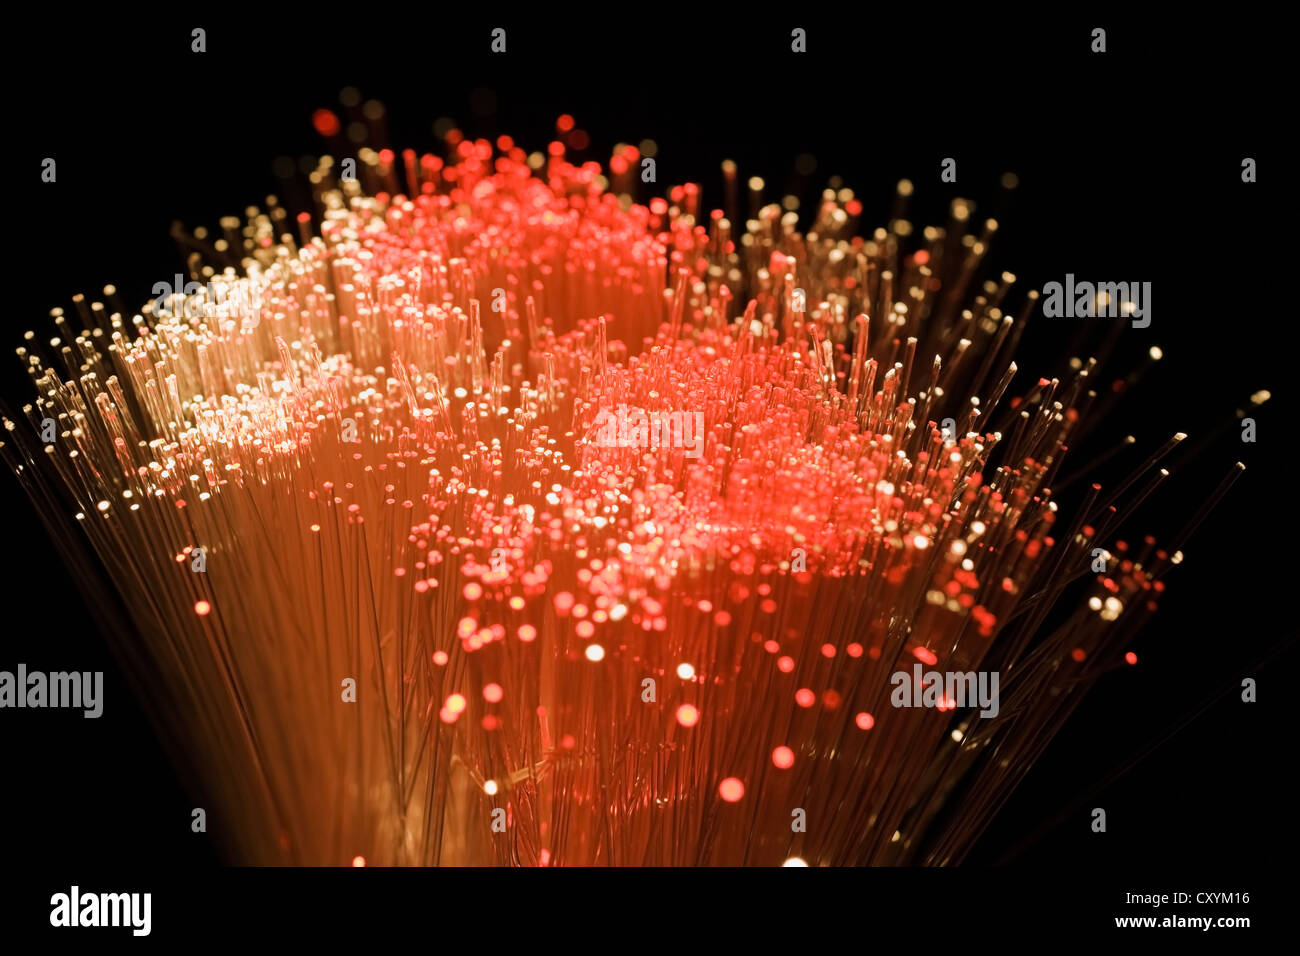 Fibre optics, optical fibers or optical fibres - Stock Image